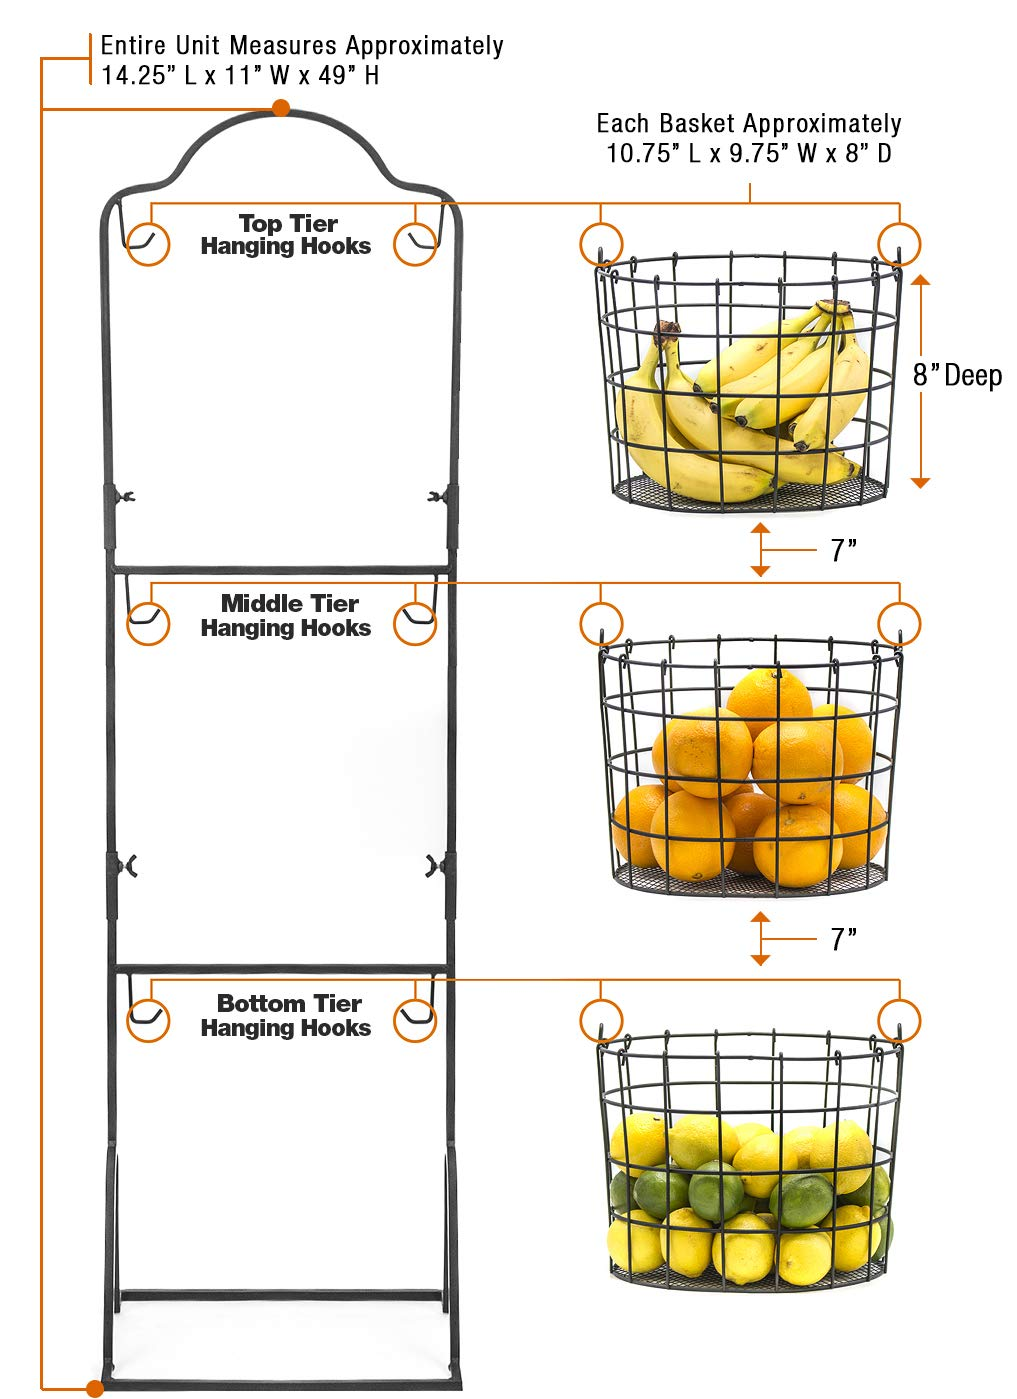 FRT-HNG3TRA Bathroom Storage Organization Stylish Tiered Serving Stand Baskets for Kitchen Household Items Vegetables Black Sorbus 3-Tier Wire Market Basket Stand for Fruit and More Toiletries